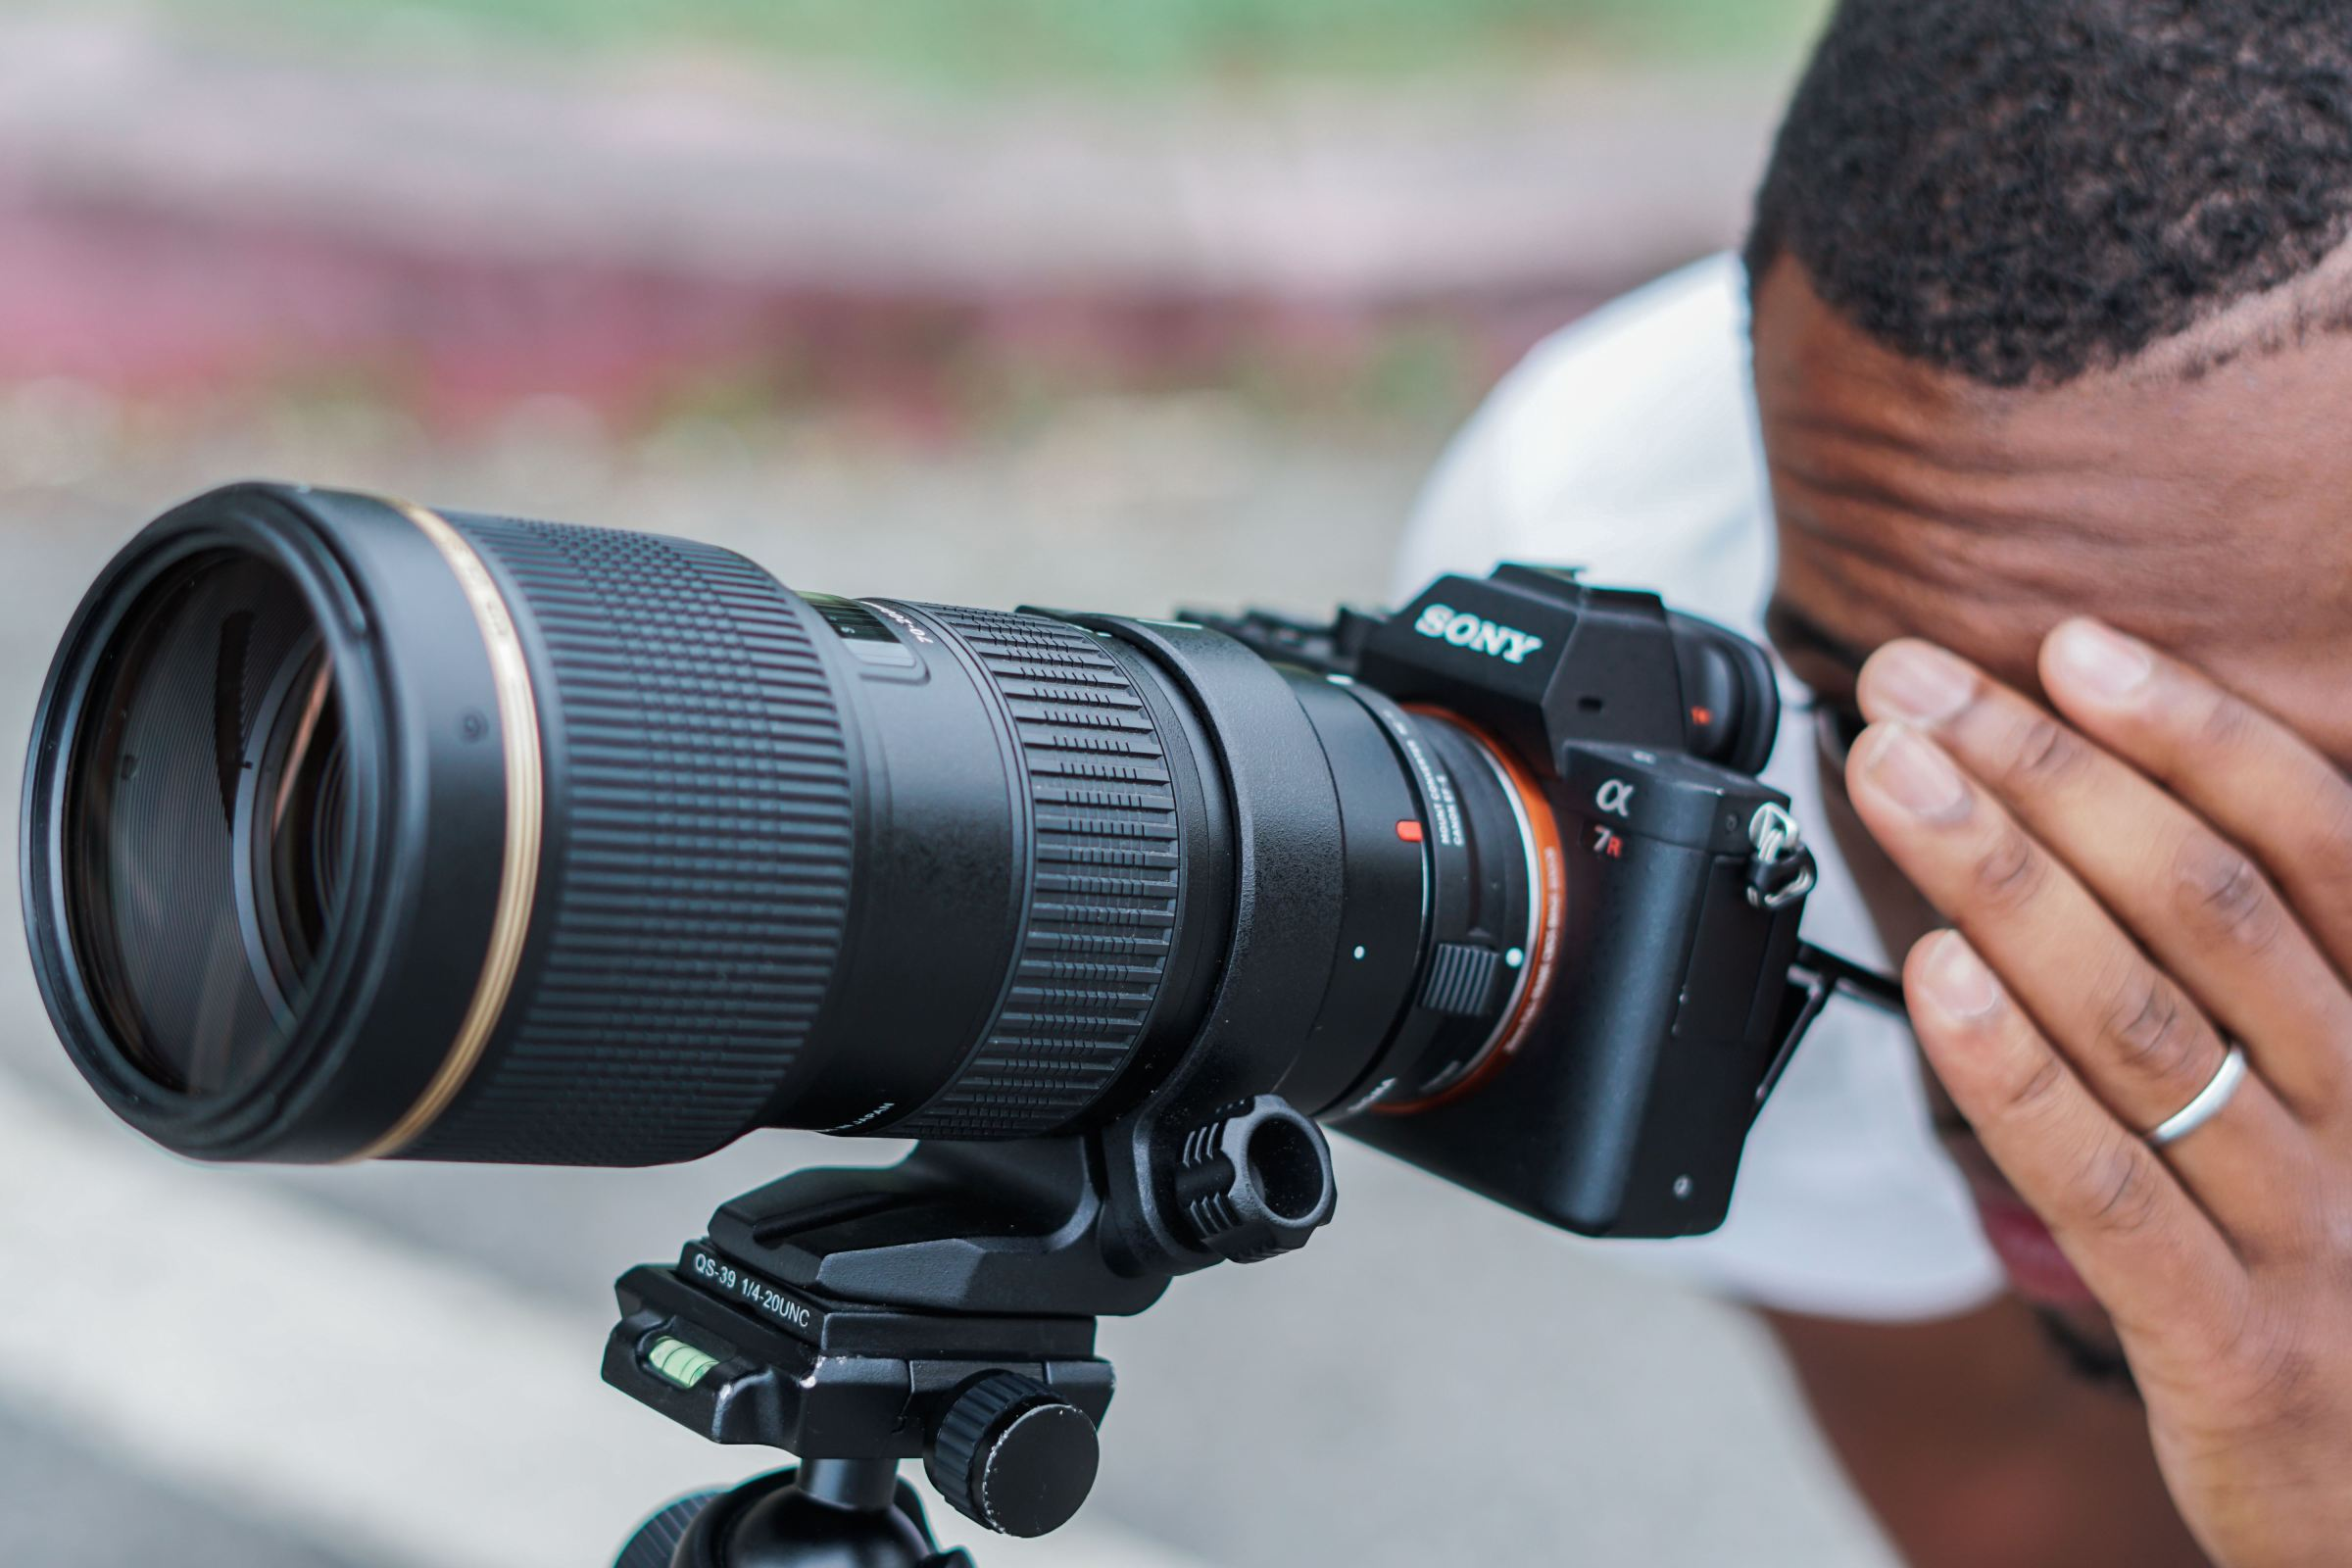 The Nollywood And A Story Of Failing Forward: 5 Lessons For Entrepreneurs